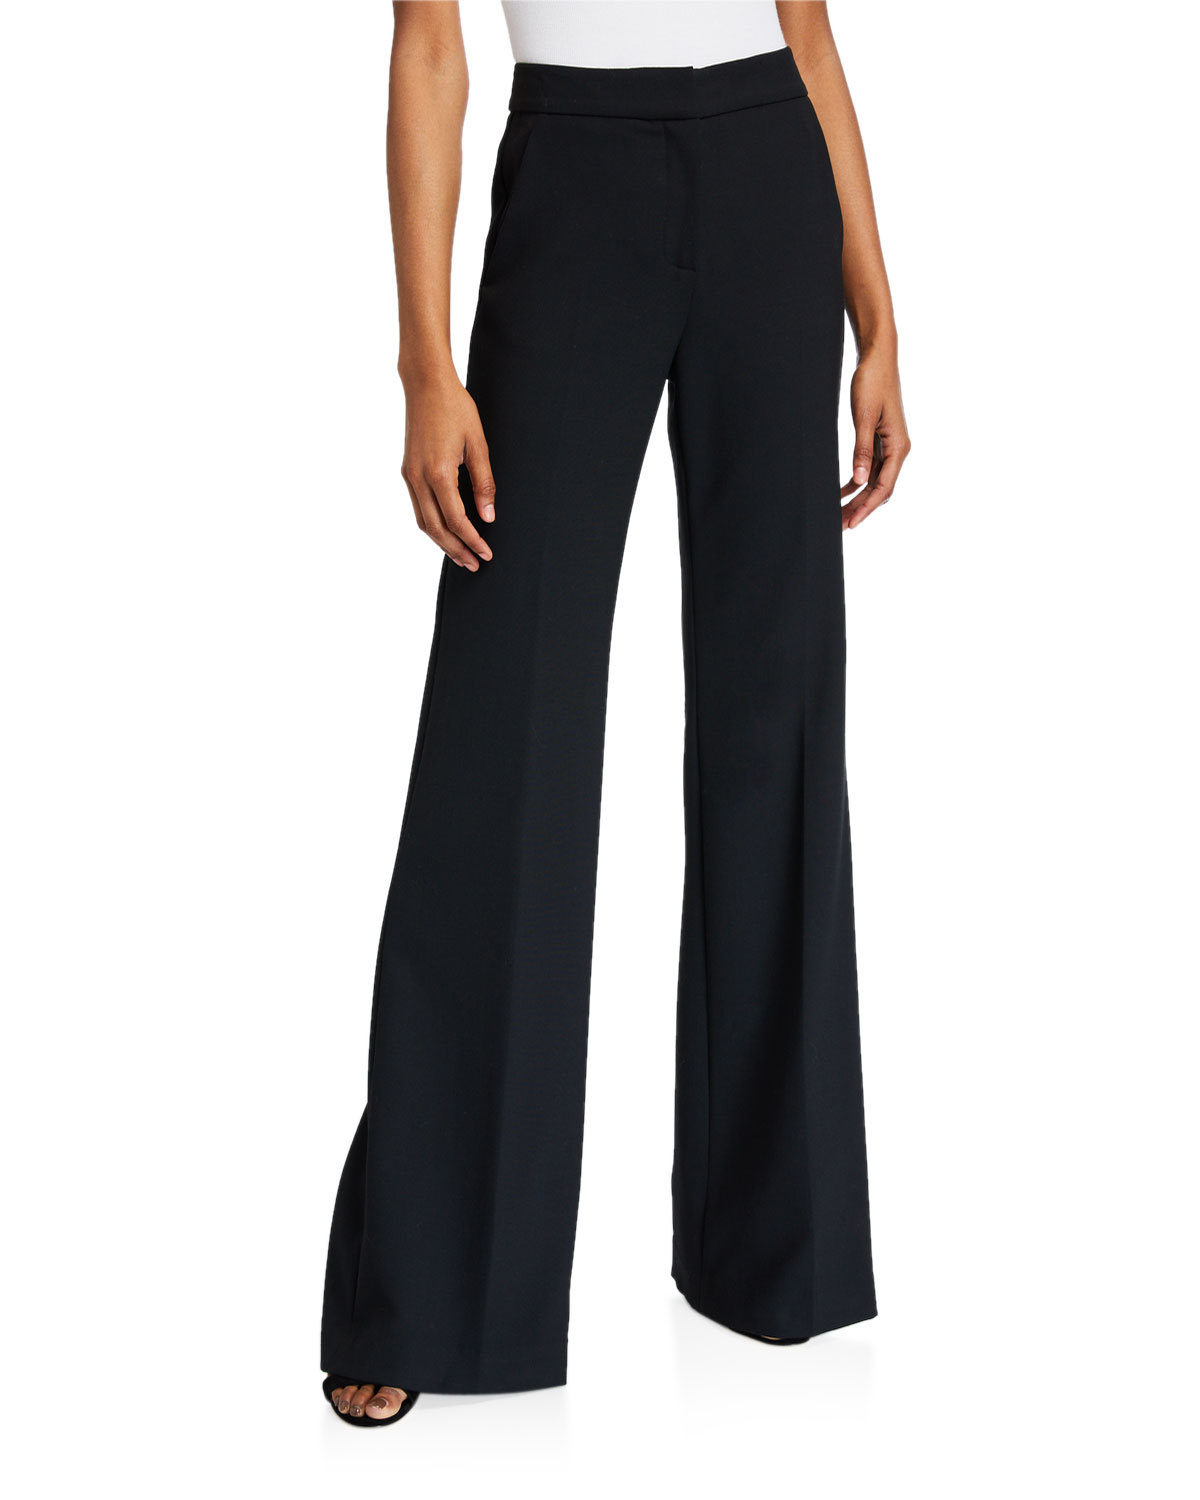 Veronica Beard Pants LEBONE HIGH-RISE WIDE-LEG PANTS